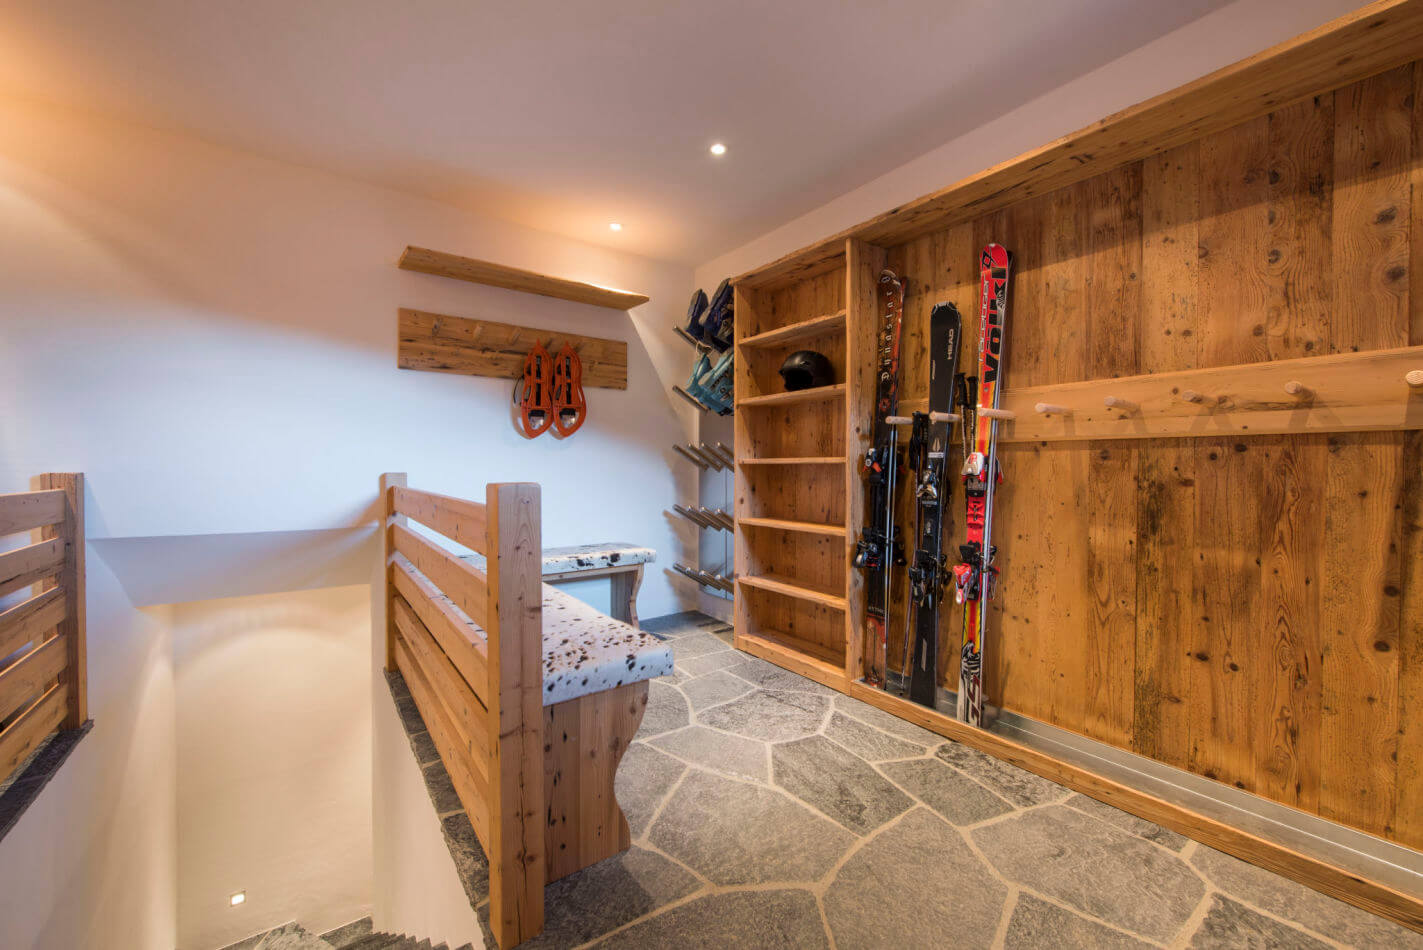 chalet-nuits-blanches-5665